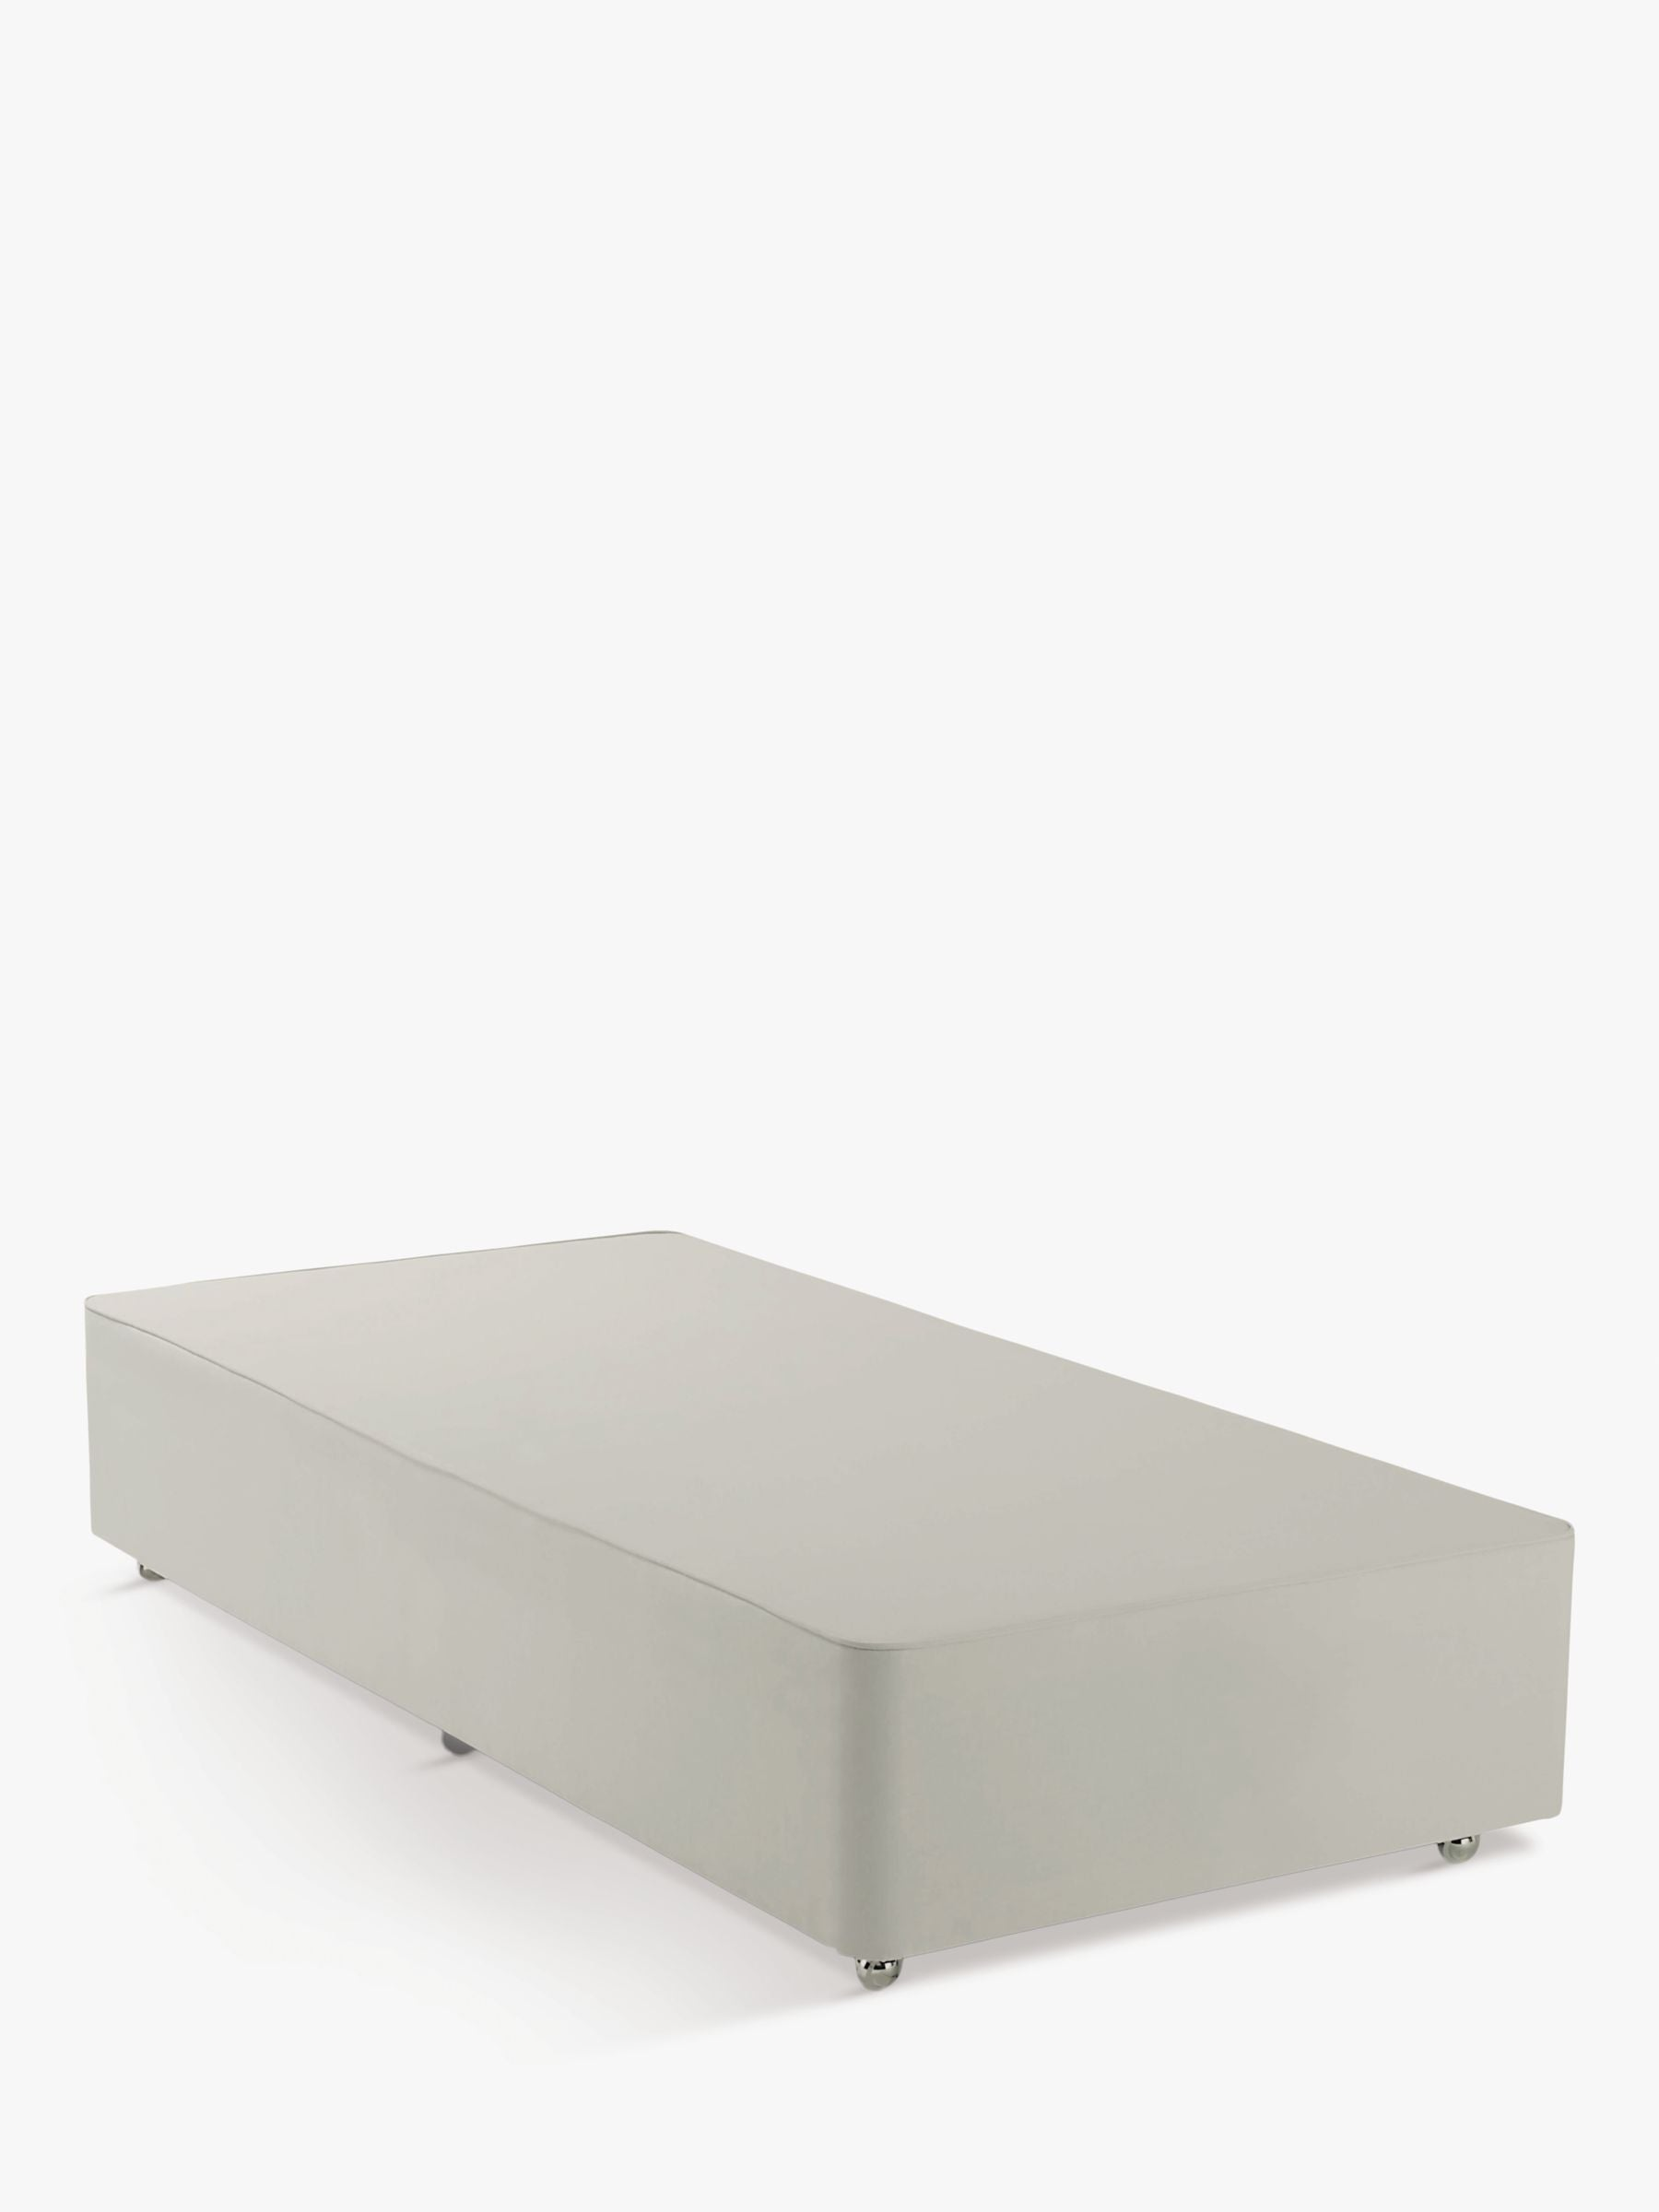 John Lewis & Partners Non-Sprung Upholstered Divan Base, Single, Canvas Stone Grey, FSC-Certified (Pine)